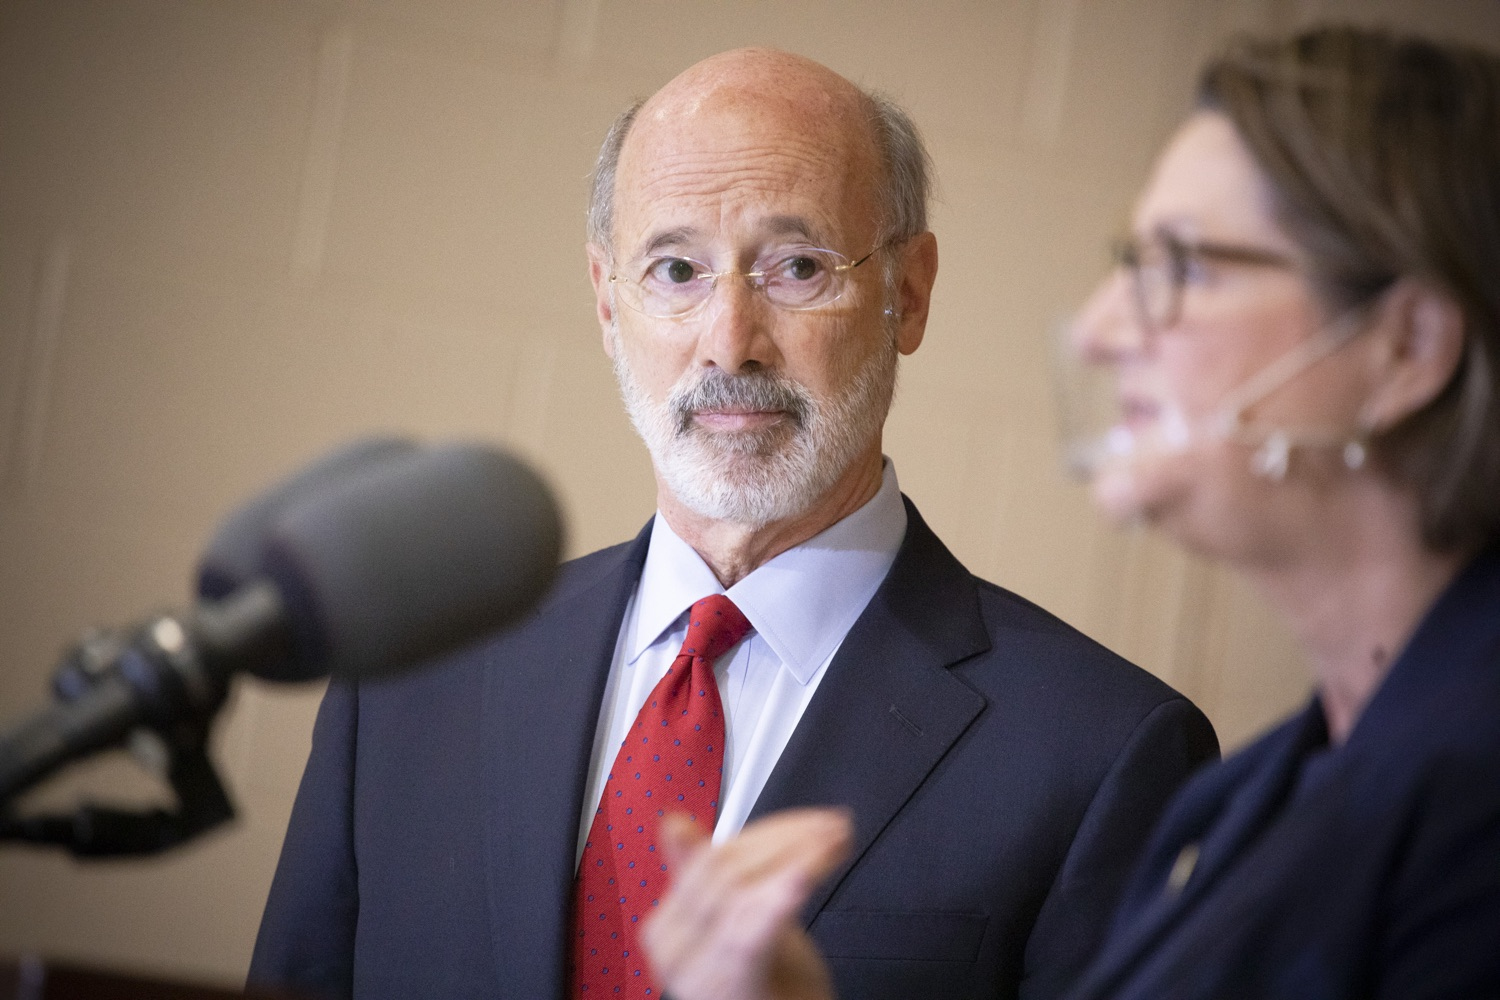 """<a href=""""https://filesource.wostreaming.net/commonwealthofpa/photo/18310_gov_adult_use_cannabis_dz_007.jpg"""" target=""""_blank"""">⇣Download Photo<br></a>Governor Tom Wolf listens as Rep. Maureen Madden  speaks to the press.Governor Tom Wolf visited The Mountain Center in Tobyhanna, Monroe County today to talk about the economic growth potential and restorative justice benefits of legalizing adult-use cannabis, something the state General Assembly has not yet done despite multiple requests from the governor and Lieutenant Governor John Fetterman to take up legislation this fall.  Tobyhanna, PA  October 13, 2020"""